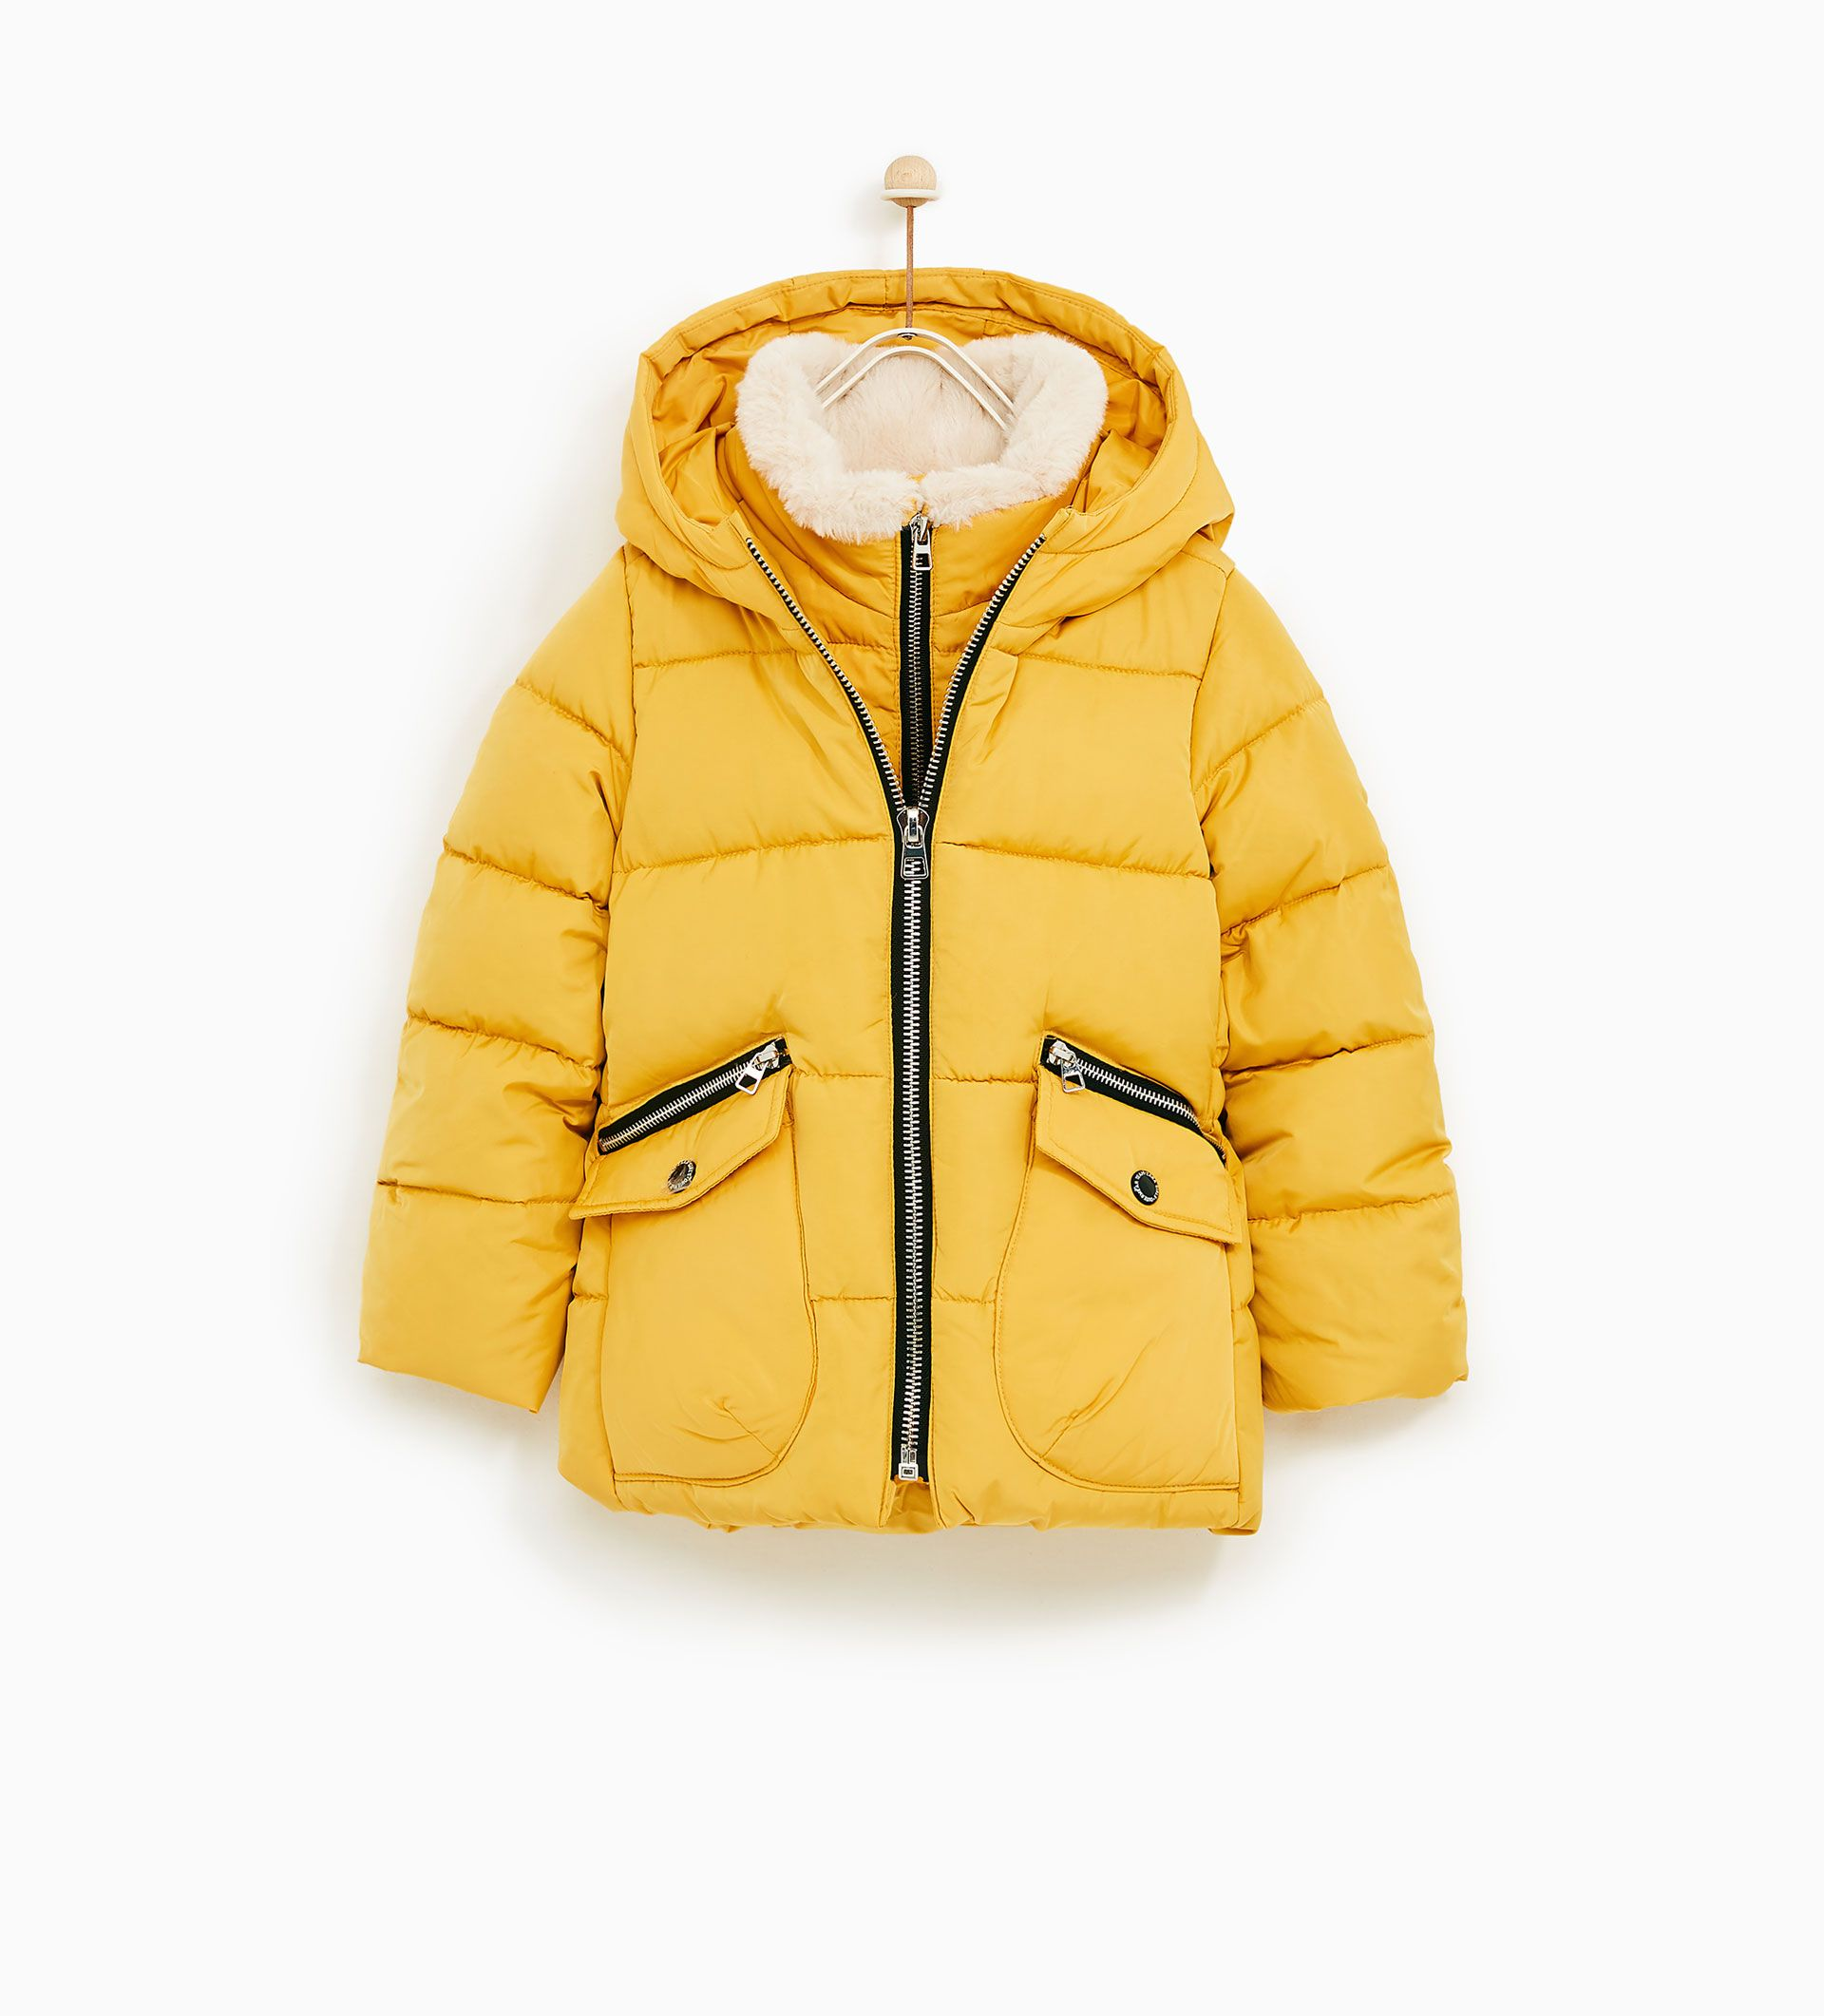 e69f2ee93 Image 1 of DOWN PUFFER JACKET WITH FAUX FUR COLLAR from Zara ...